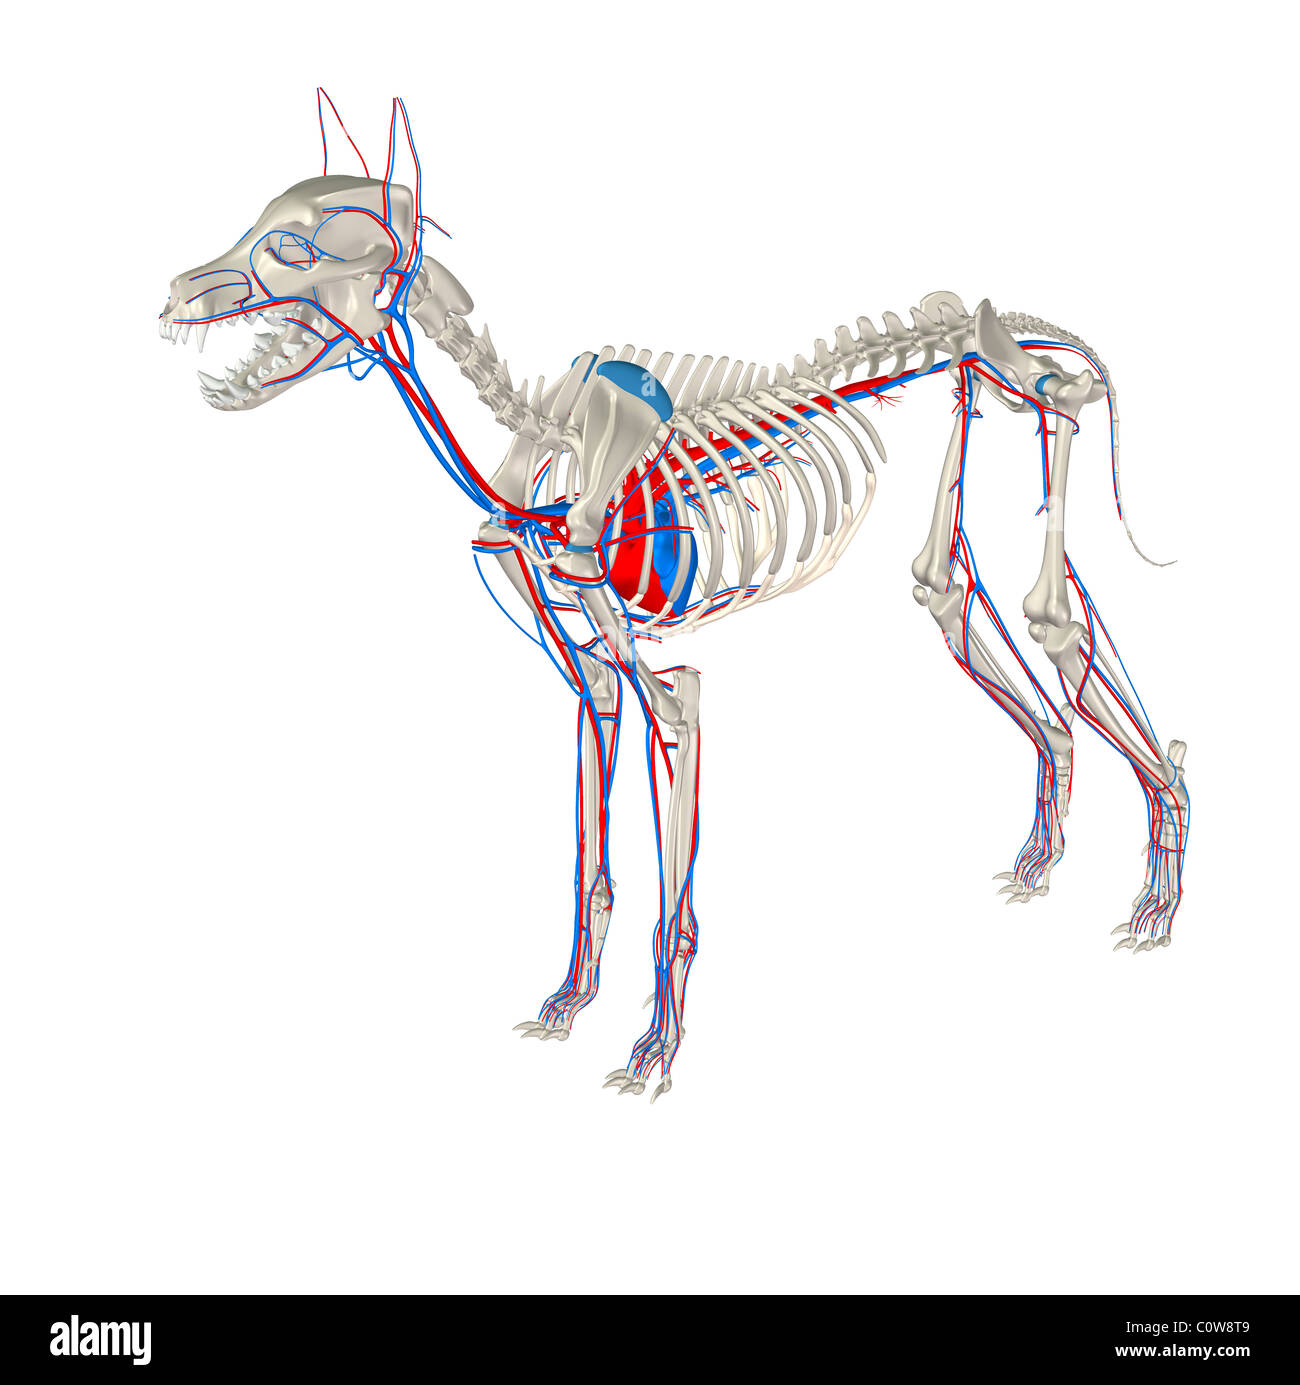 Dog Anatomy Heart Circulation Stock Photos & Dog Anatomy Heart ...